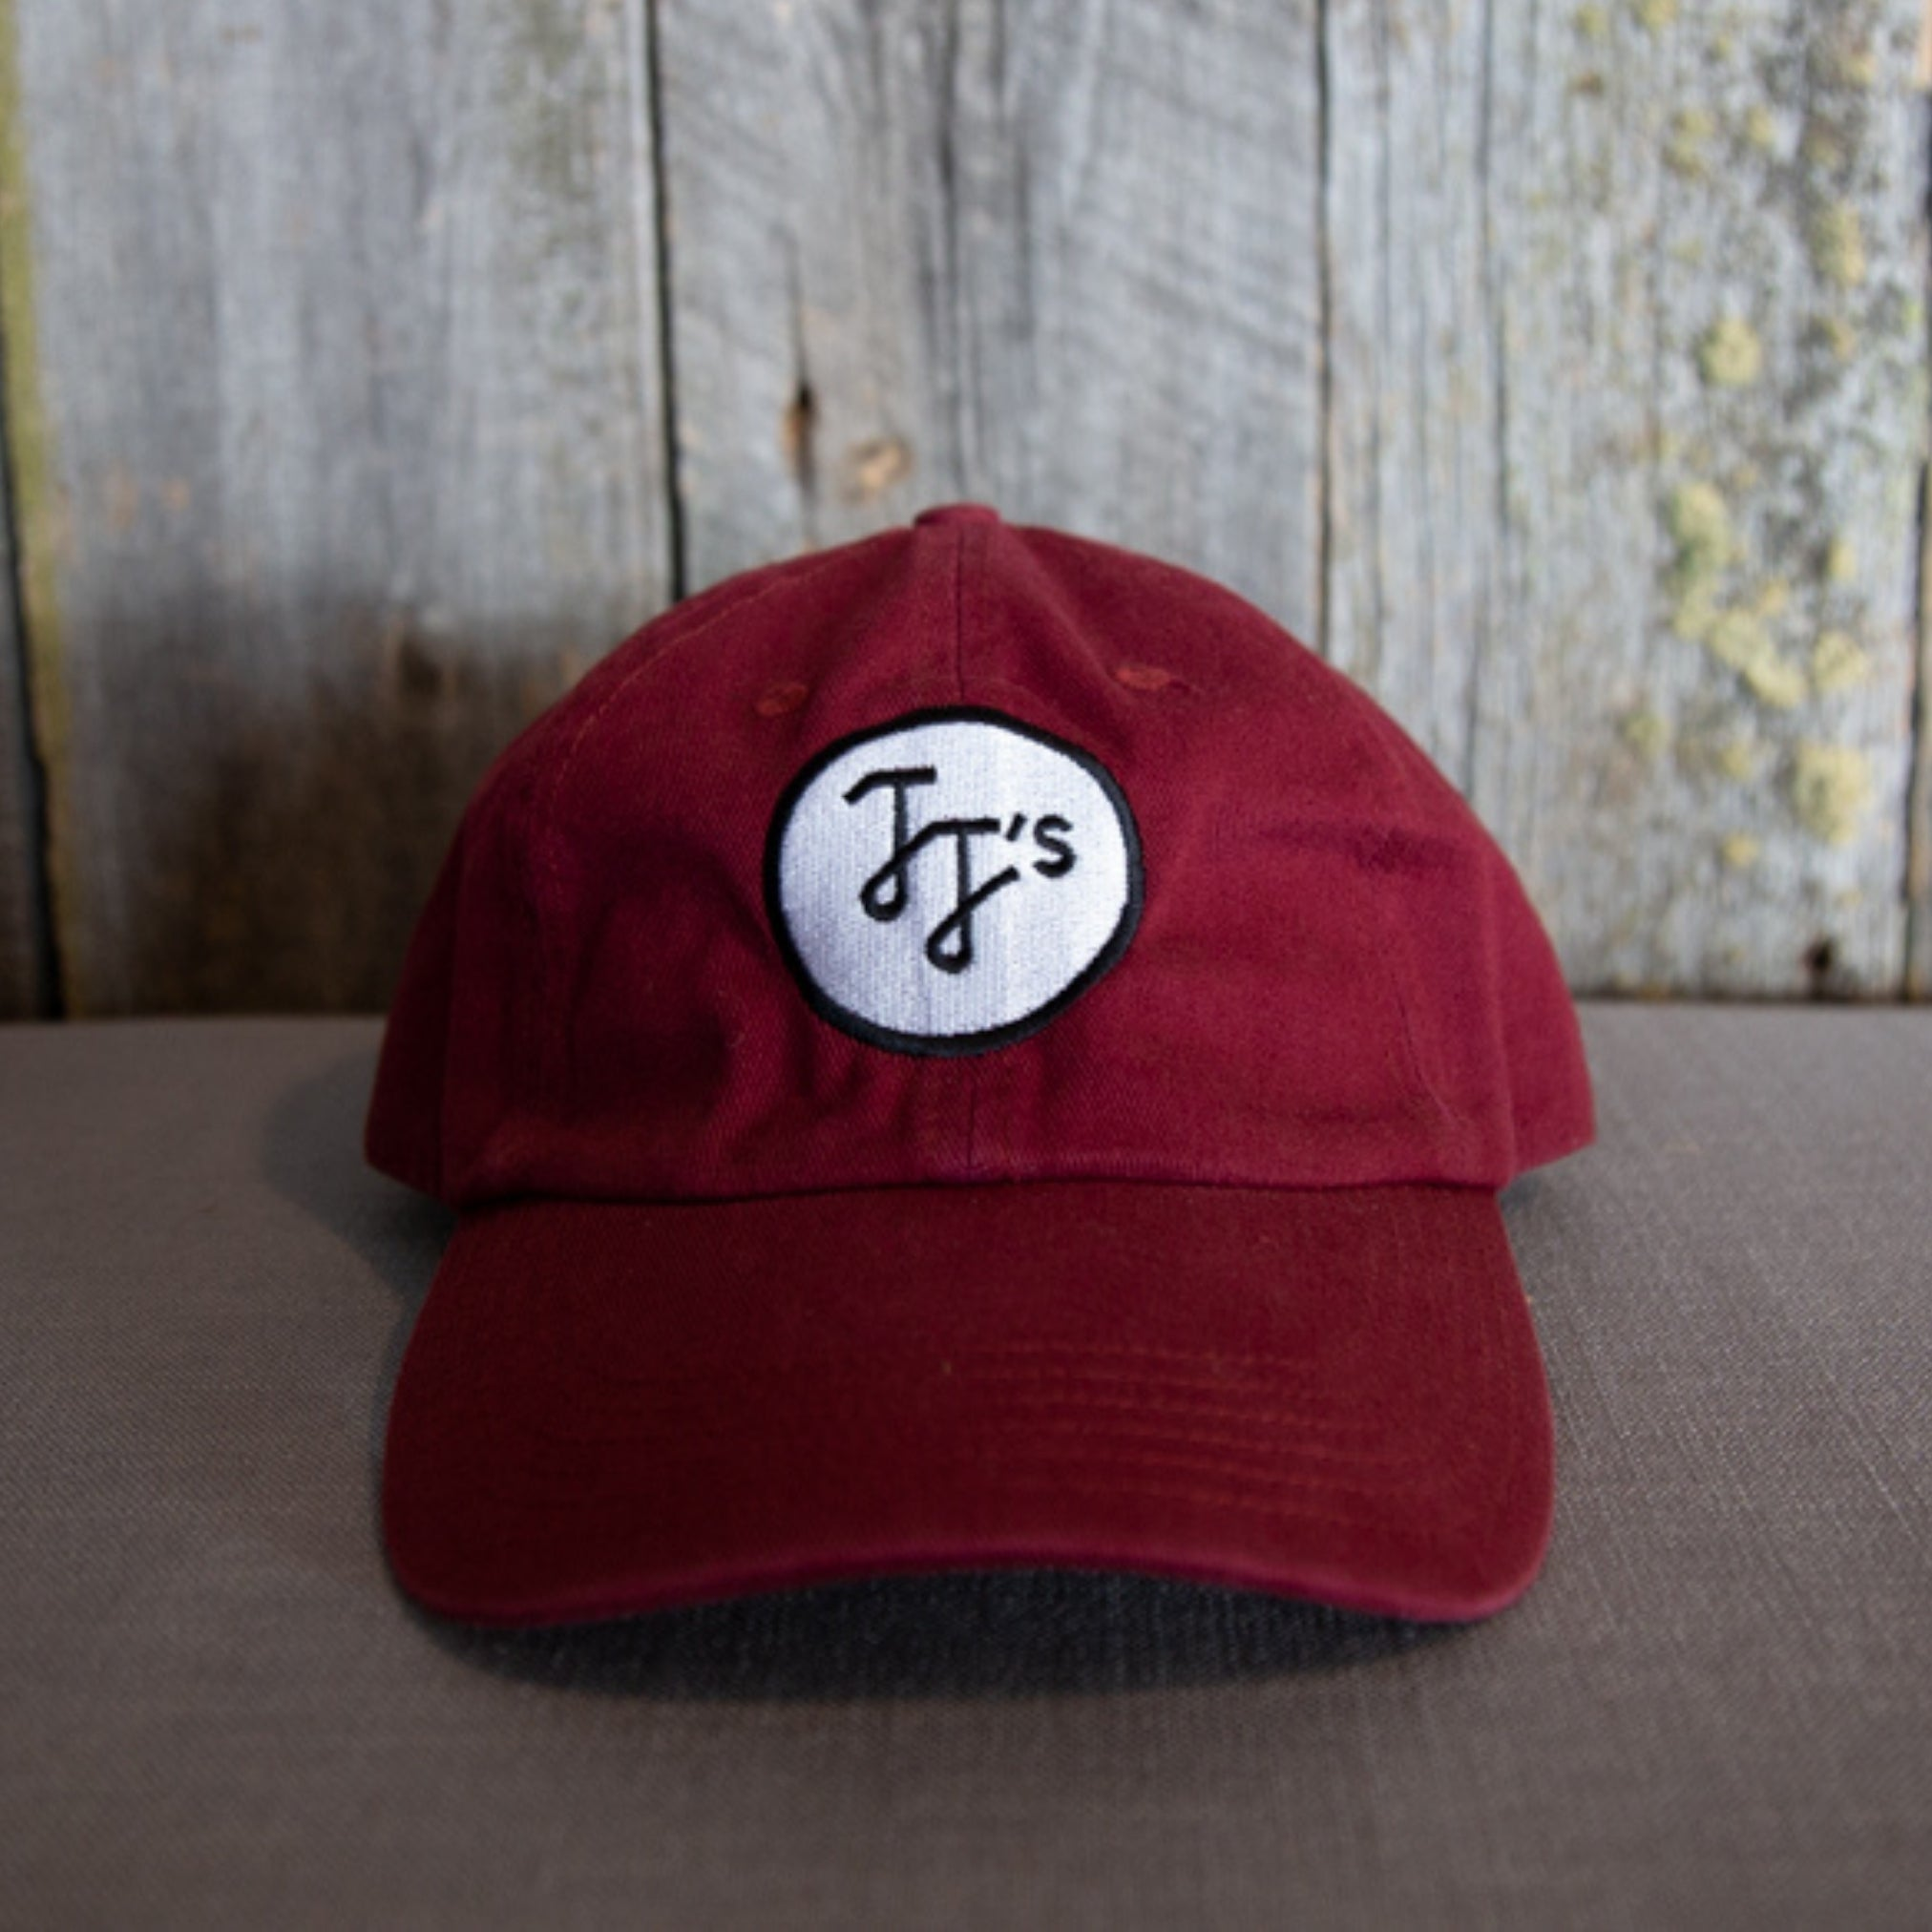 JJs Garment Washed Cap